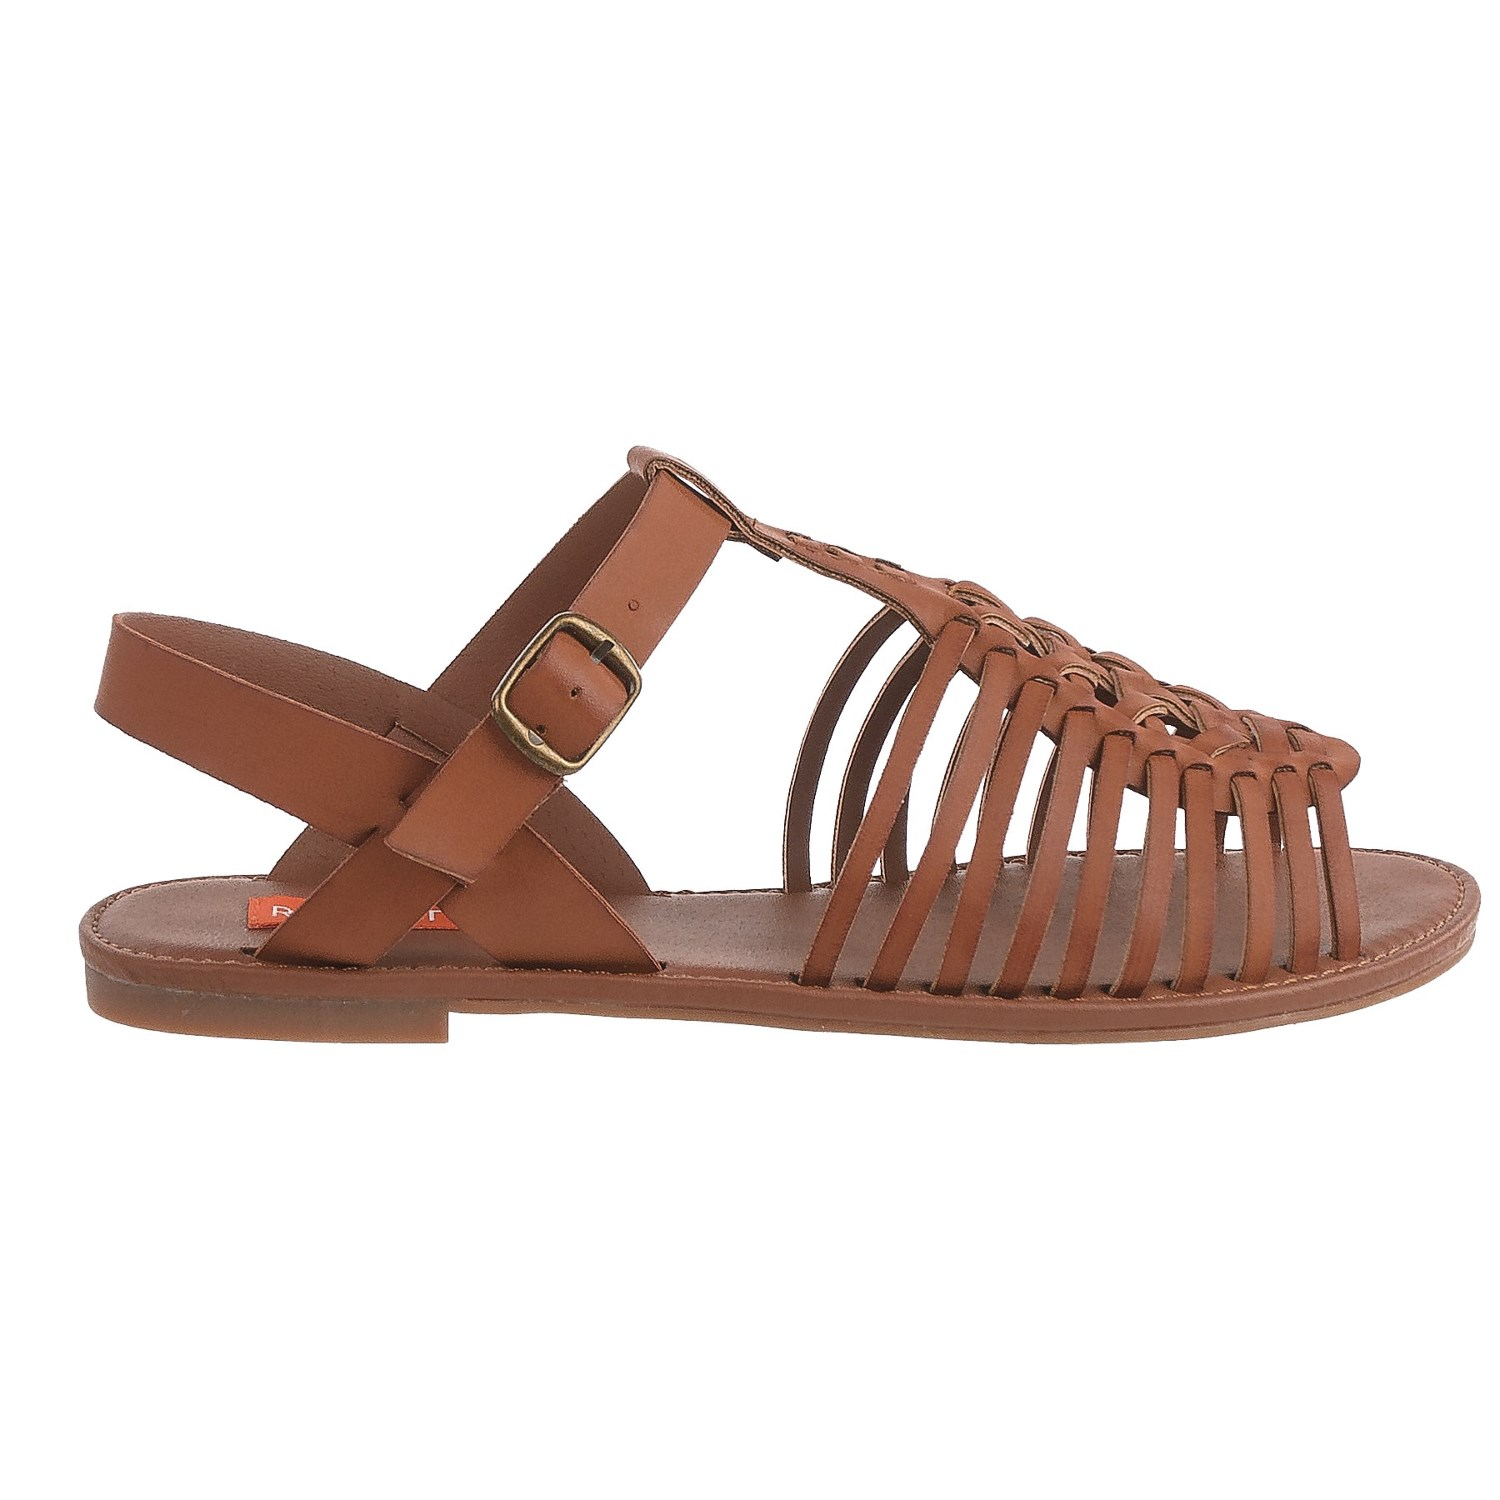 8e1a31439574 rocket dog sandals on sale   OFF62% Discounted